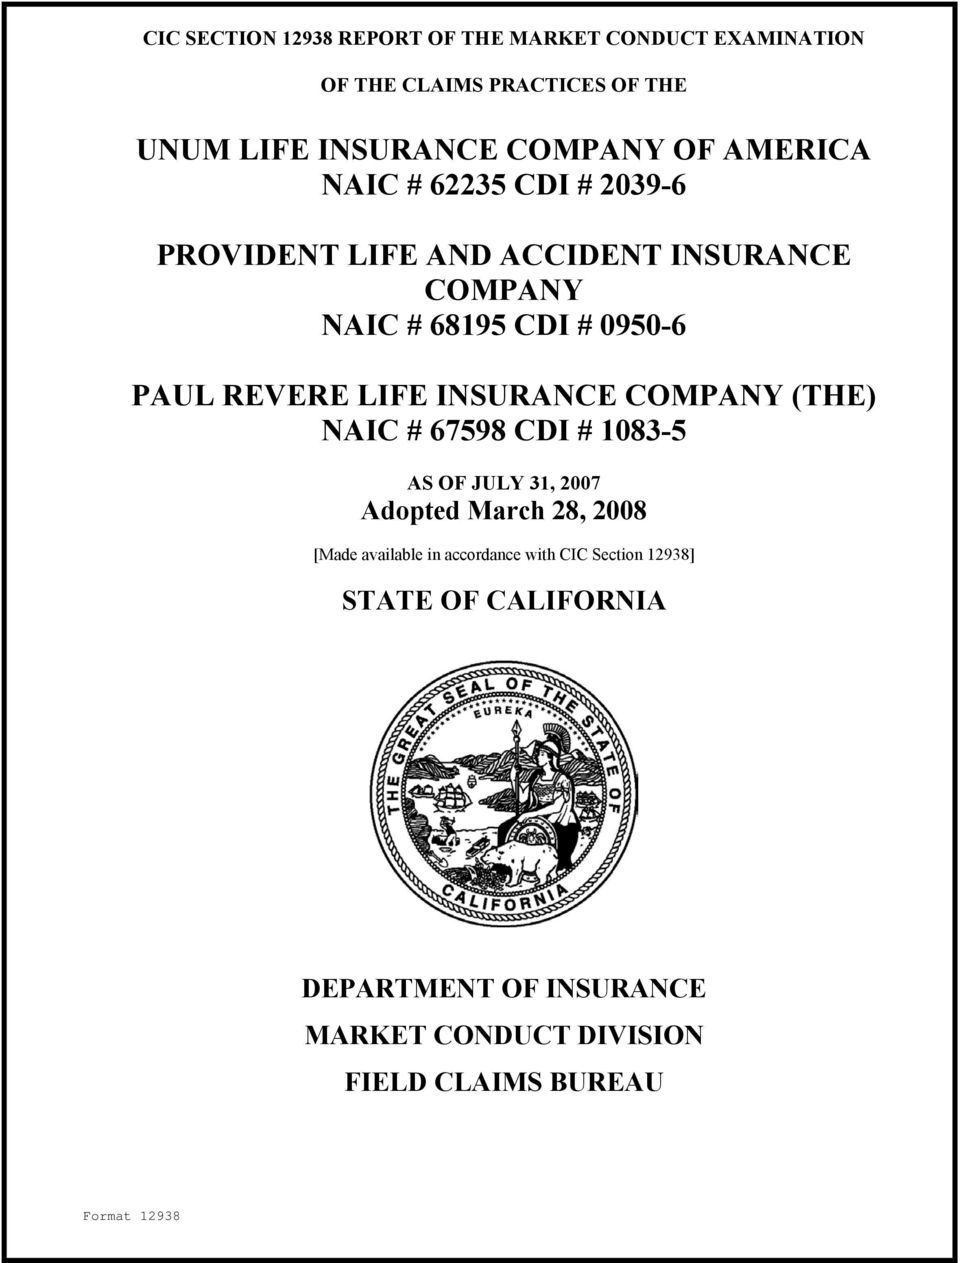 INSURANCE COMPANY (THE) NAIC # 67598 CDI # 1083-5 AS OF JULY 31, 2007 Adopted March 28, 2008 [Made available in accordance